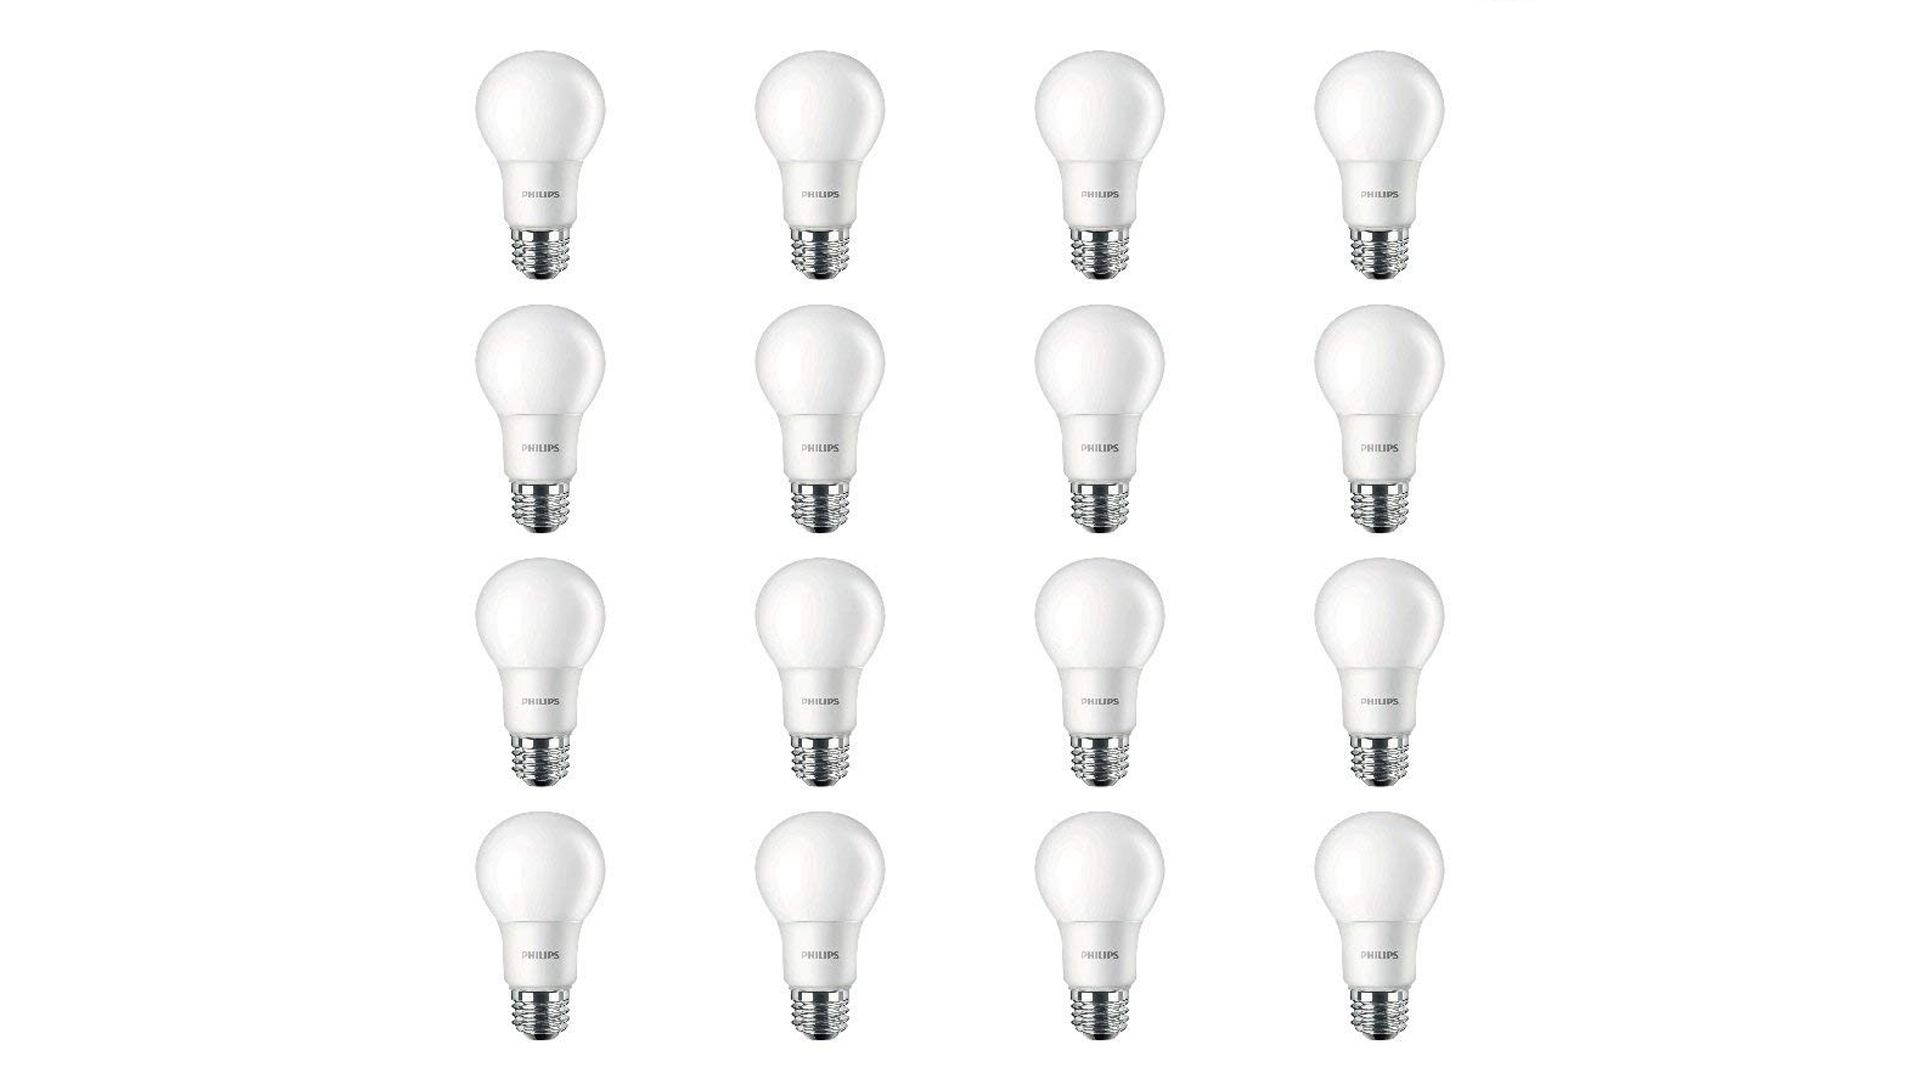 16 of Philips cheap LED bulbs